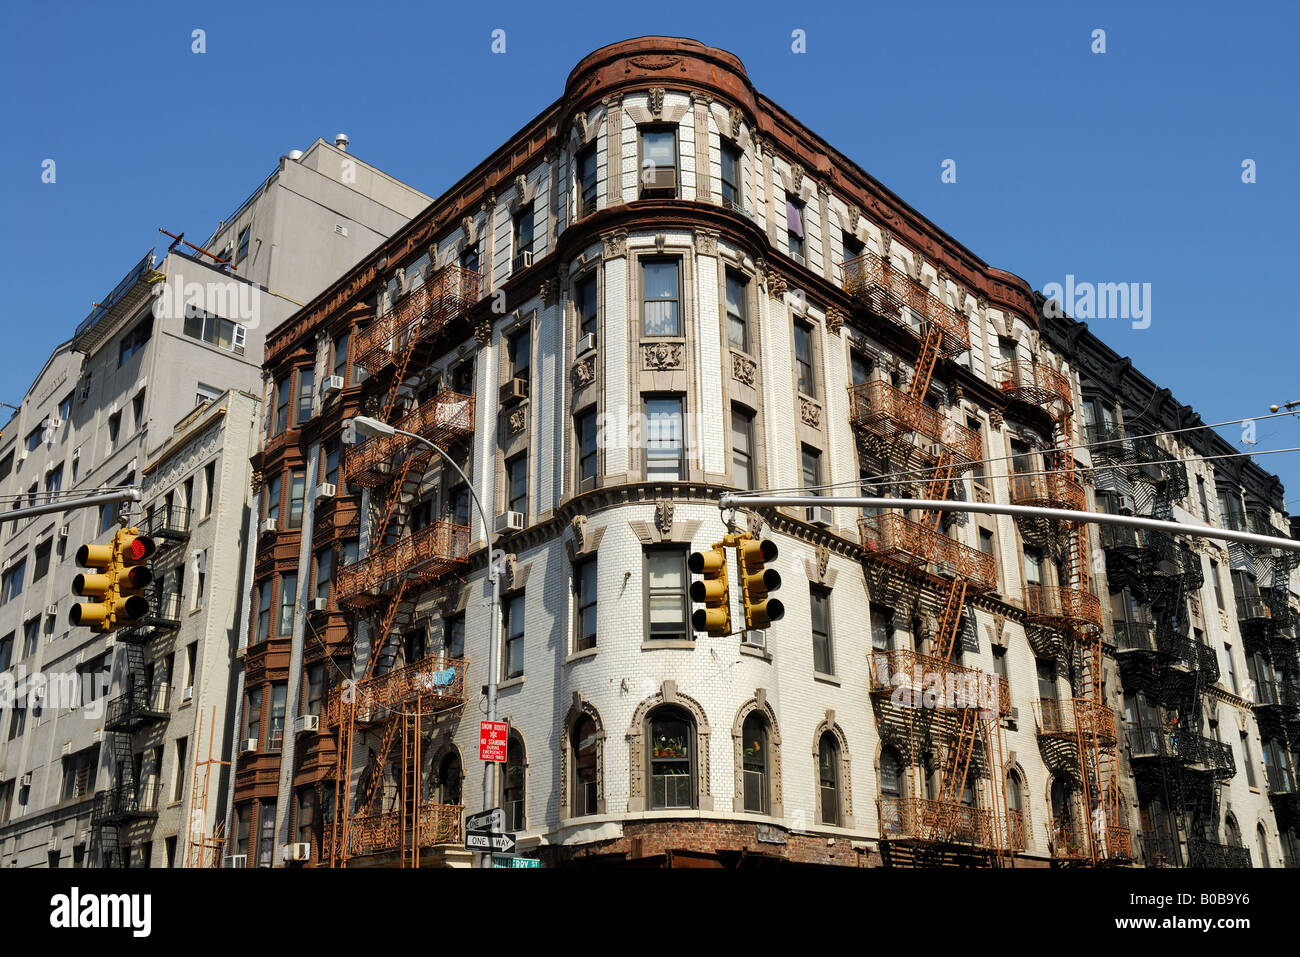 old art deco style building in new york city stock photo royalty free image 17459658 alamy. Black Bedroom Furniture Sets. Home Design Ideas